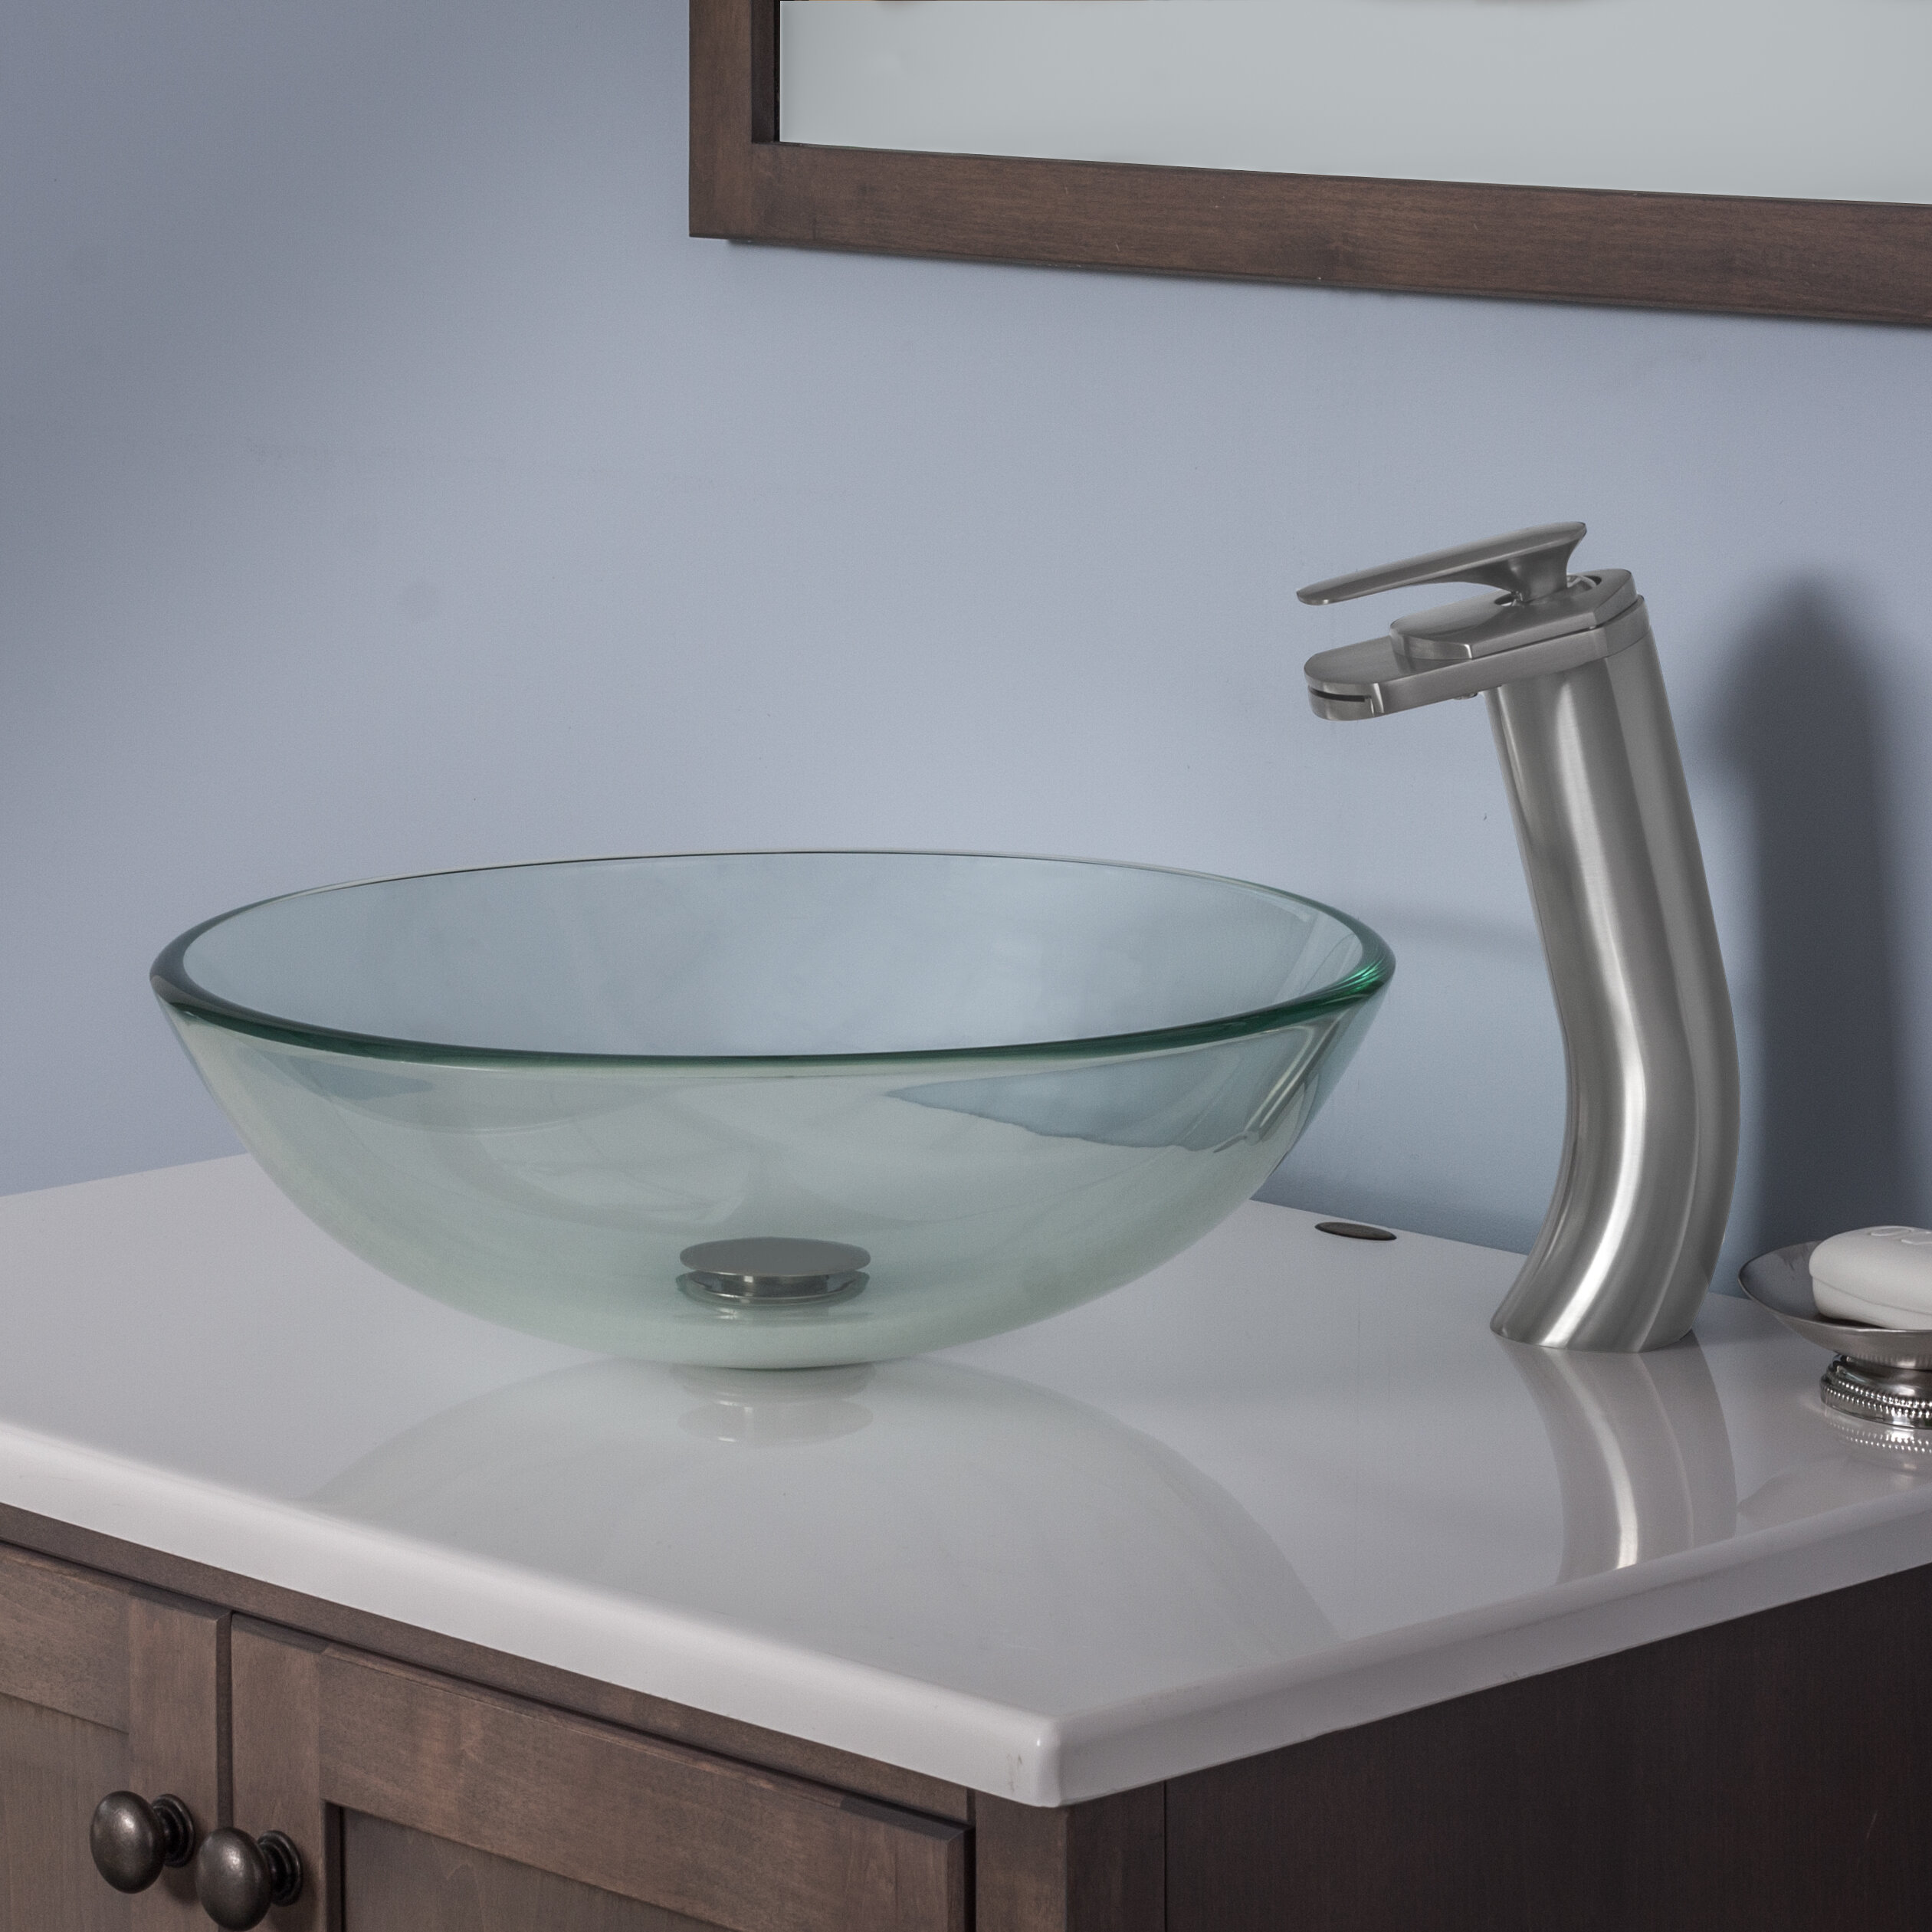 Old Fashioned Bathroom Sink Fixtures Faucets Mold